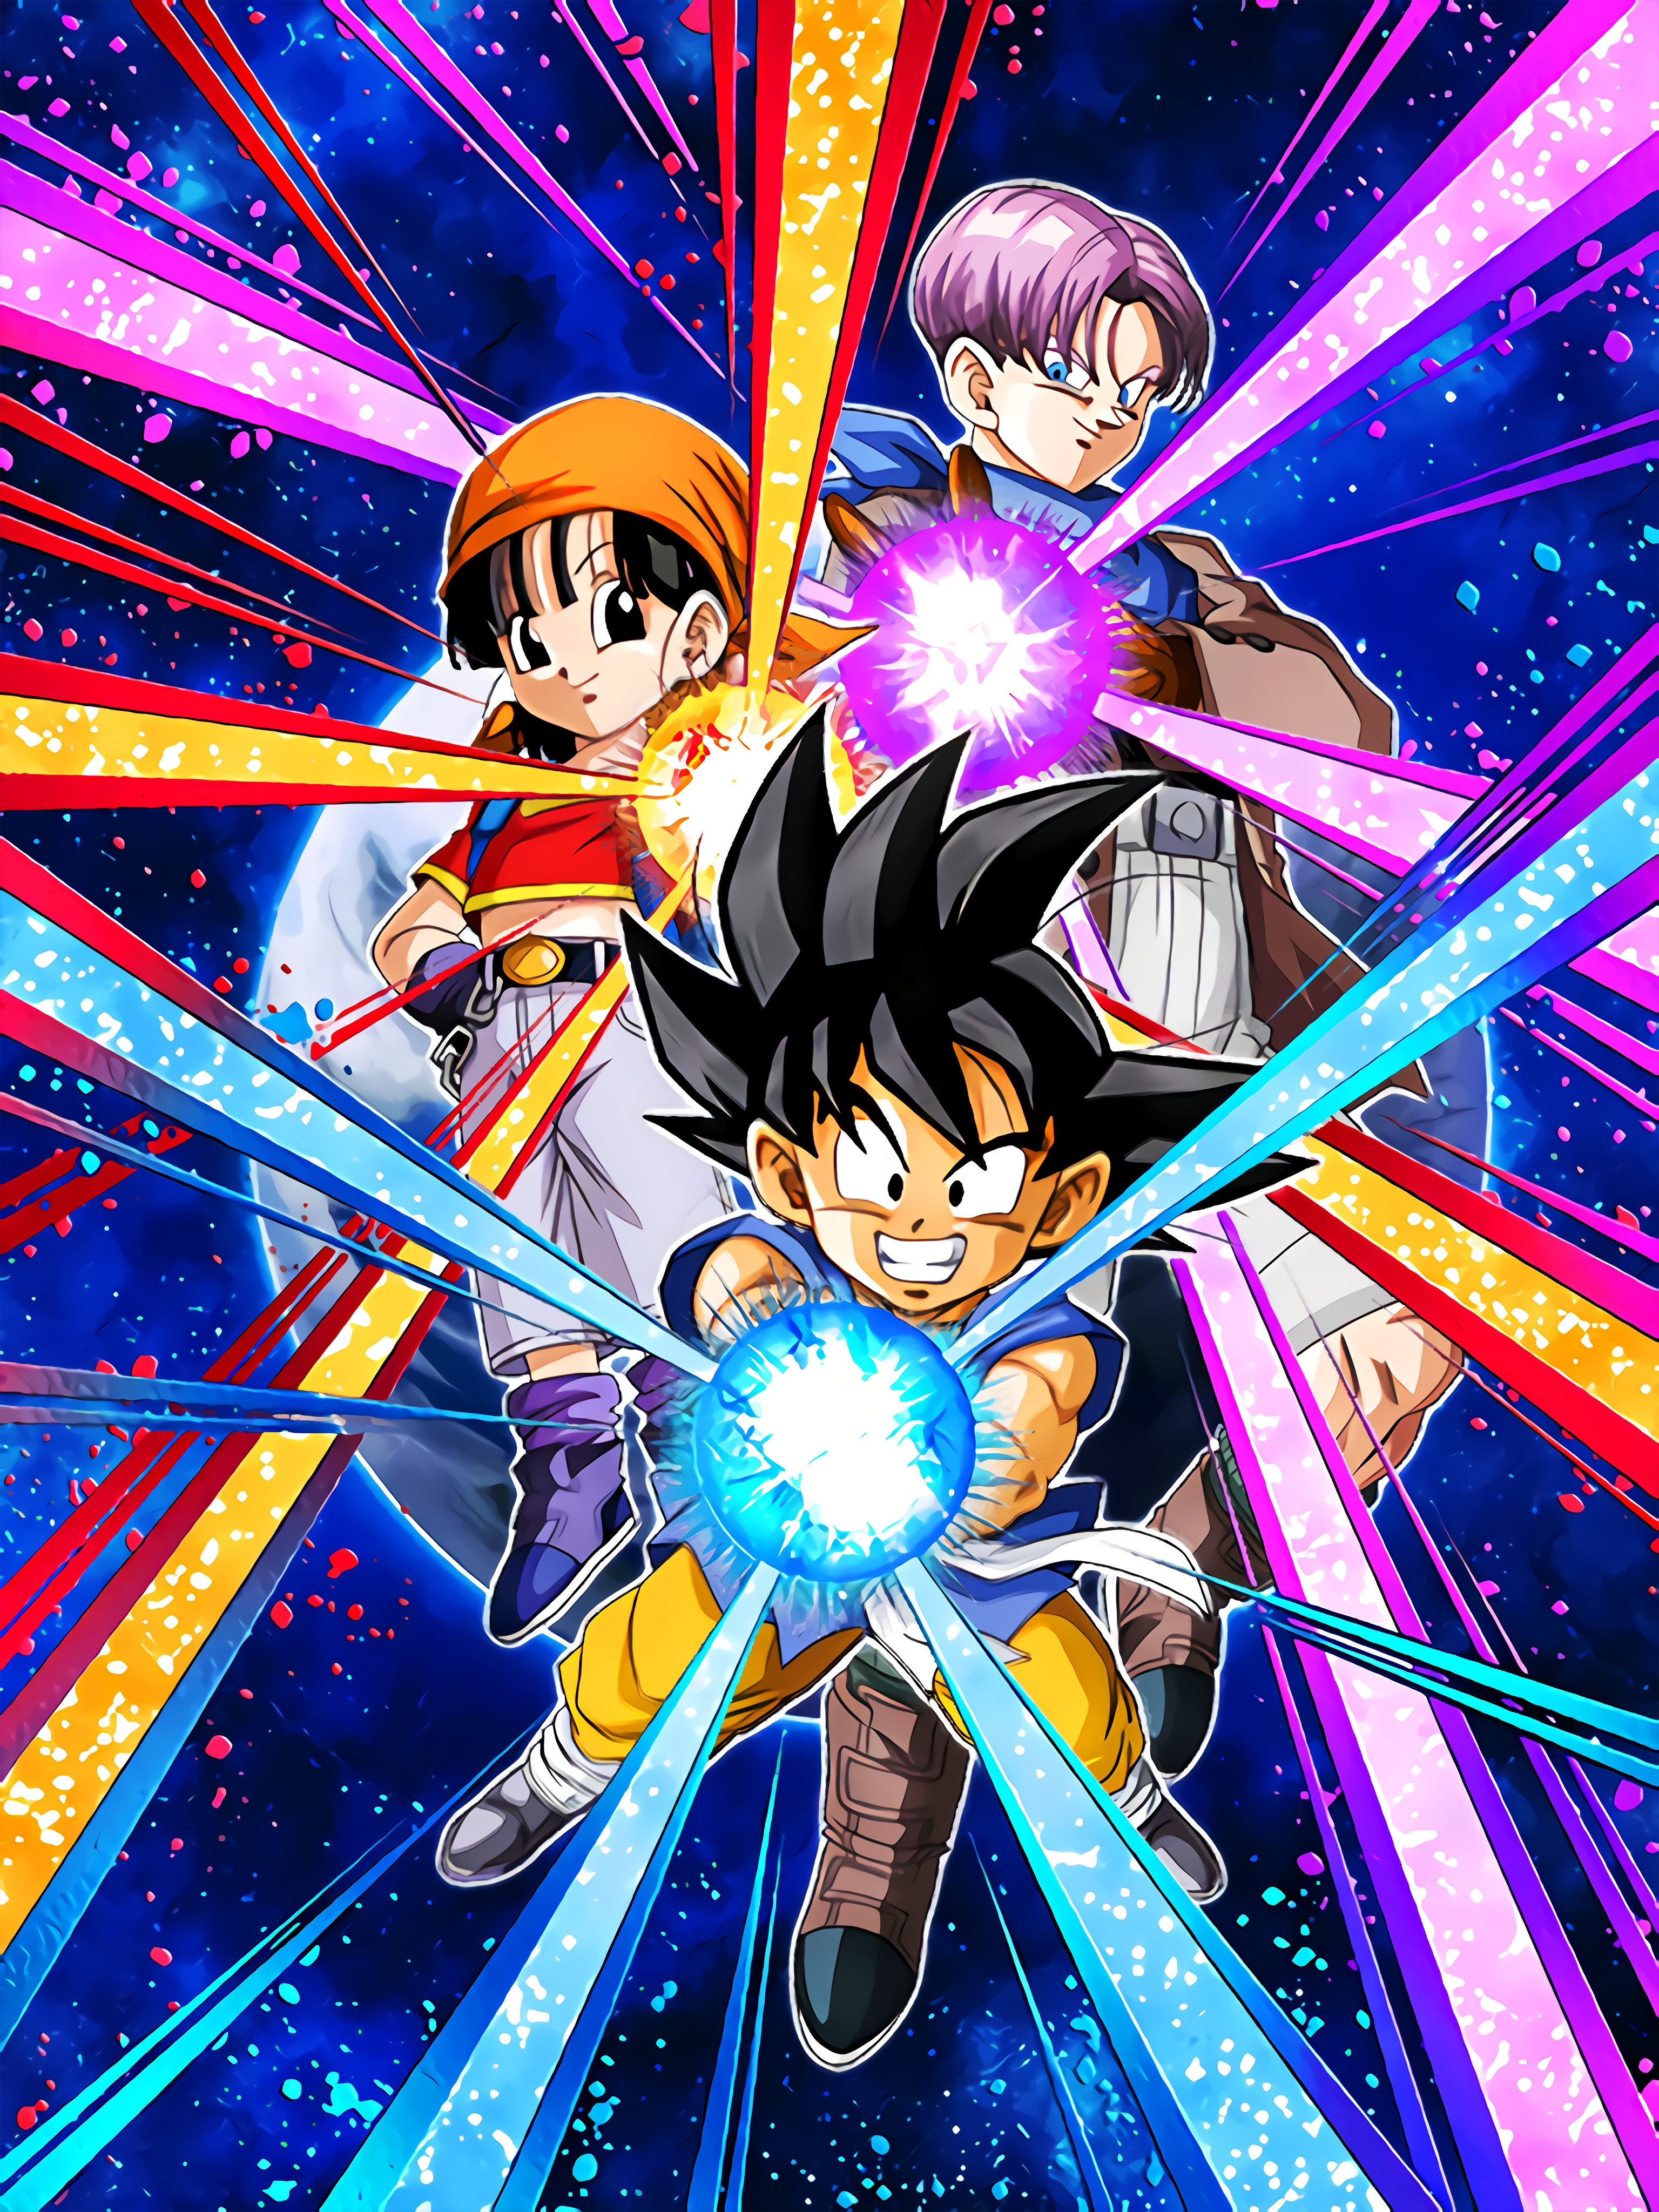 Great Fight with Strange Stars Goku, Pan, Trunks Art (Dragon Ball Z Dokkan Battle).jpg